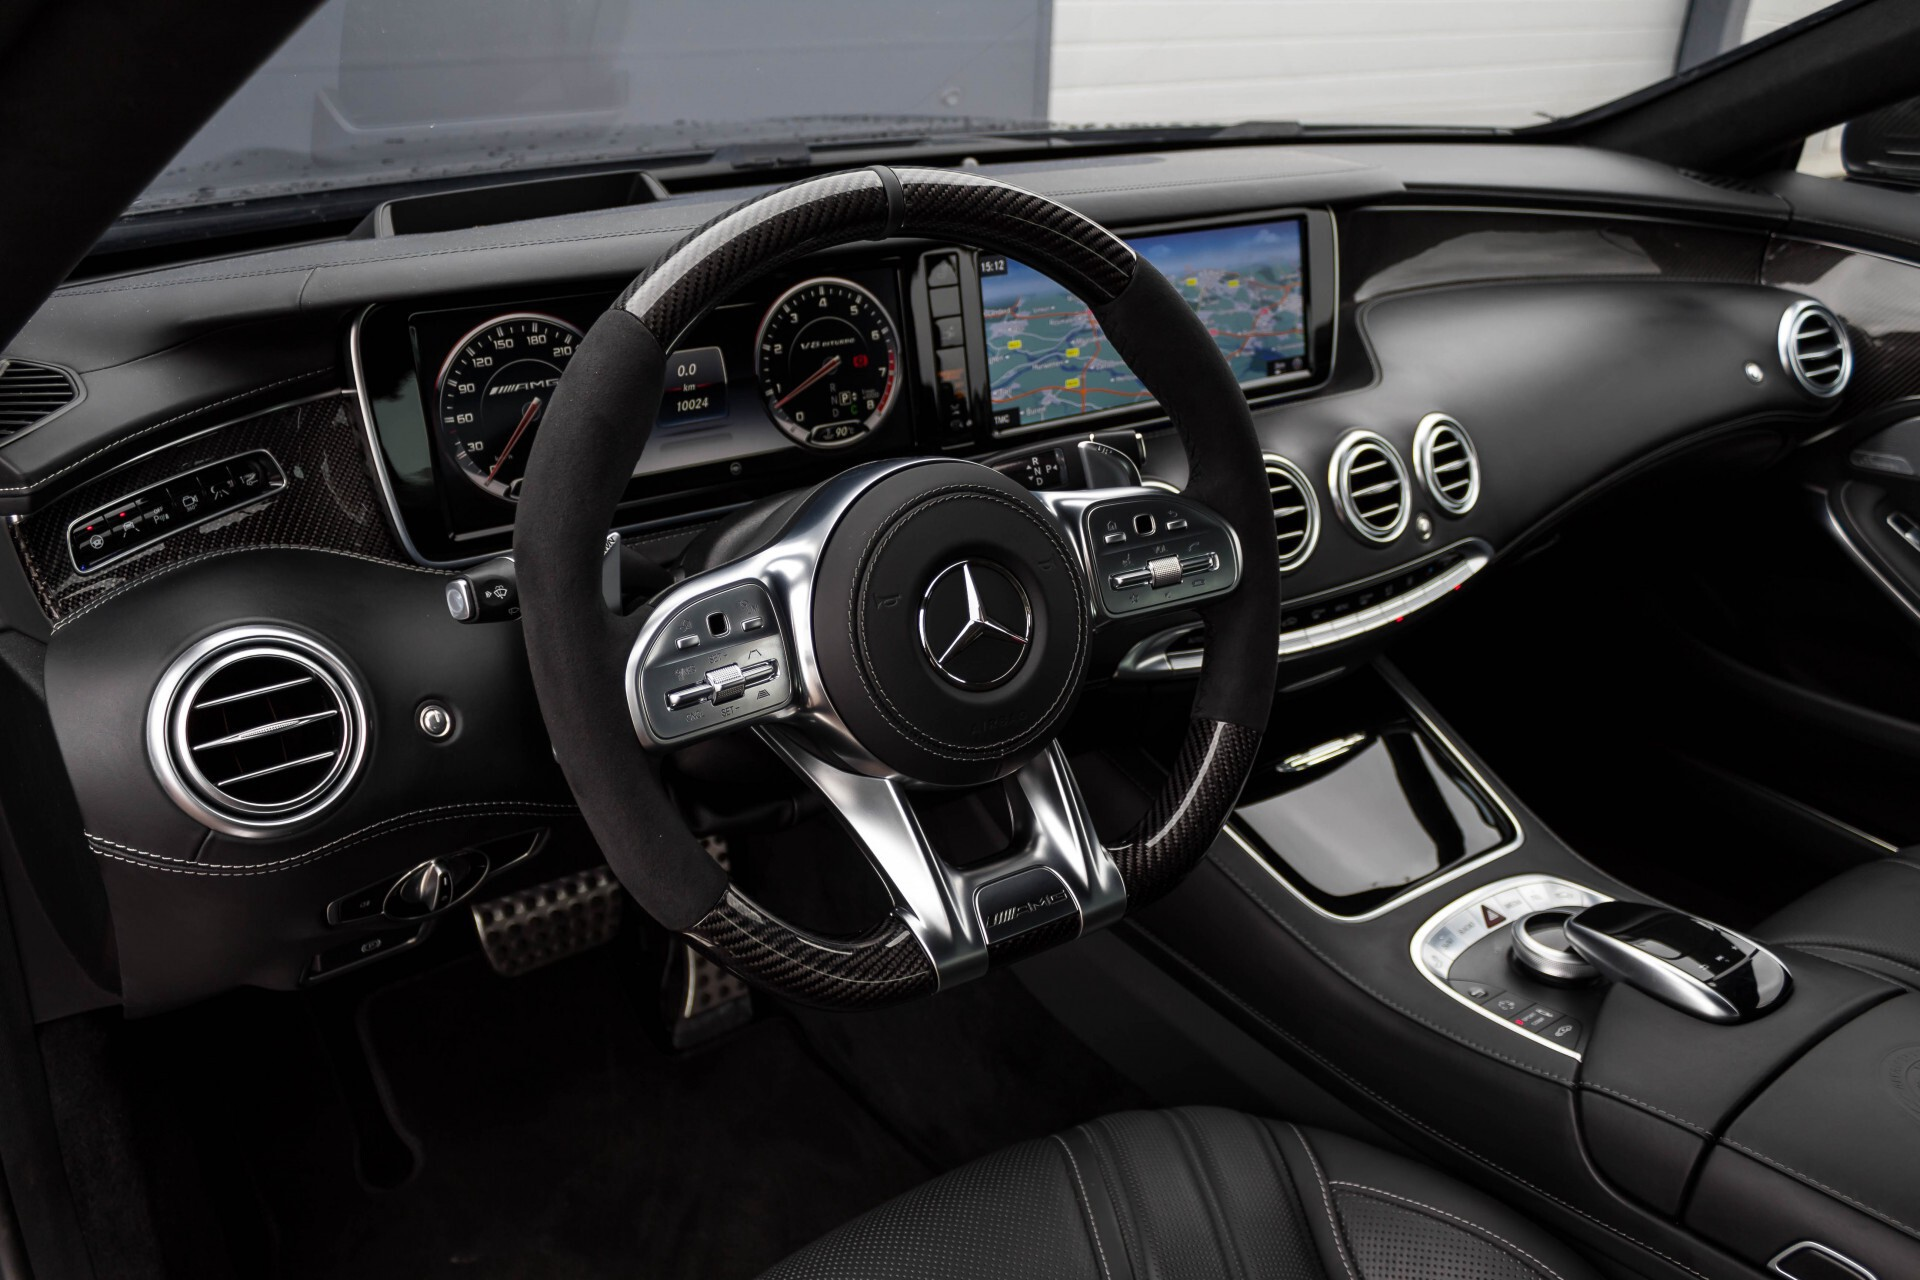 Mercedes-Benz S-Klasse Cabrio 63 AMG 4-M Ceramic/Designo/Carbon/High End/TV Aut7 Foto 26